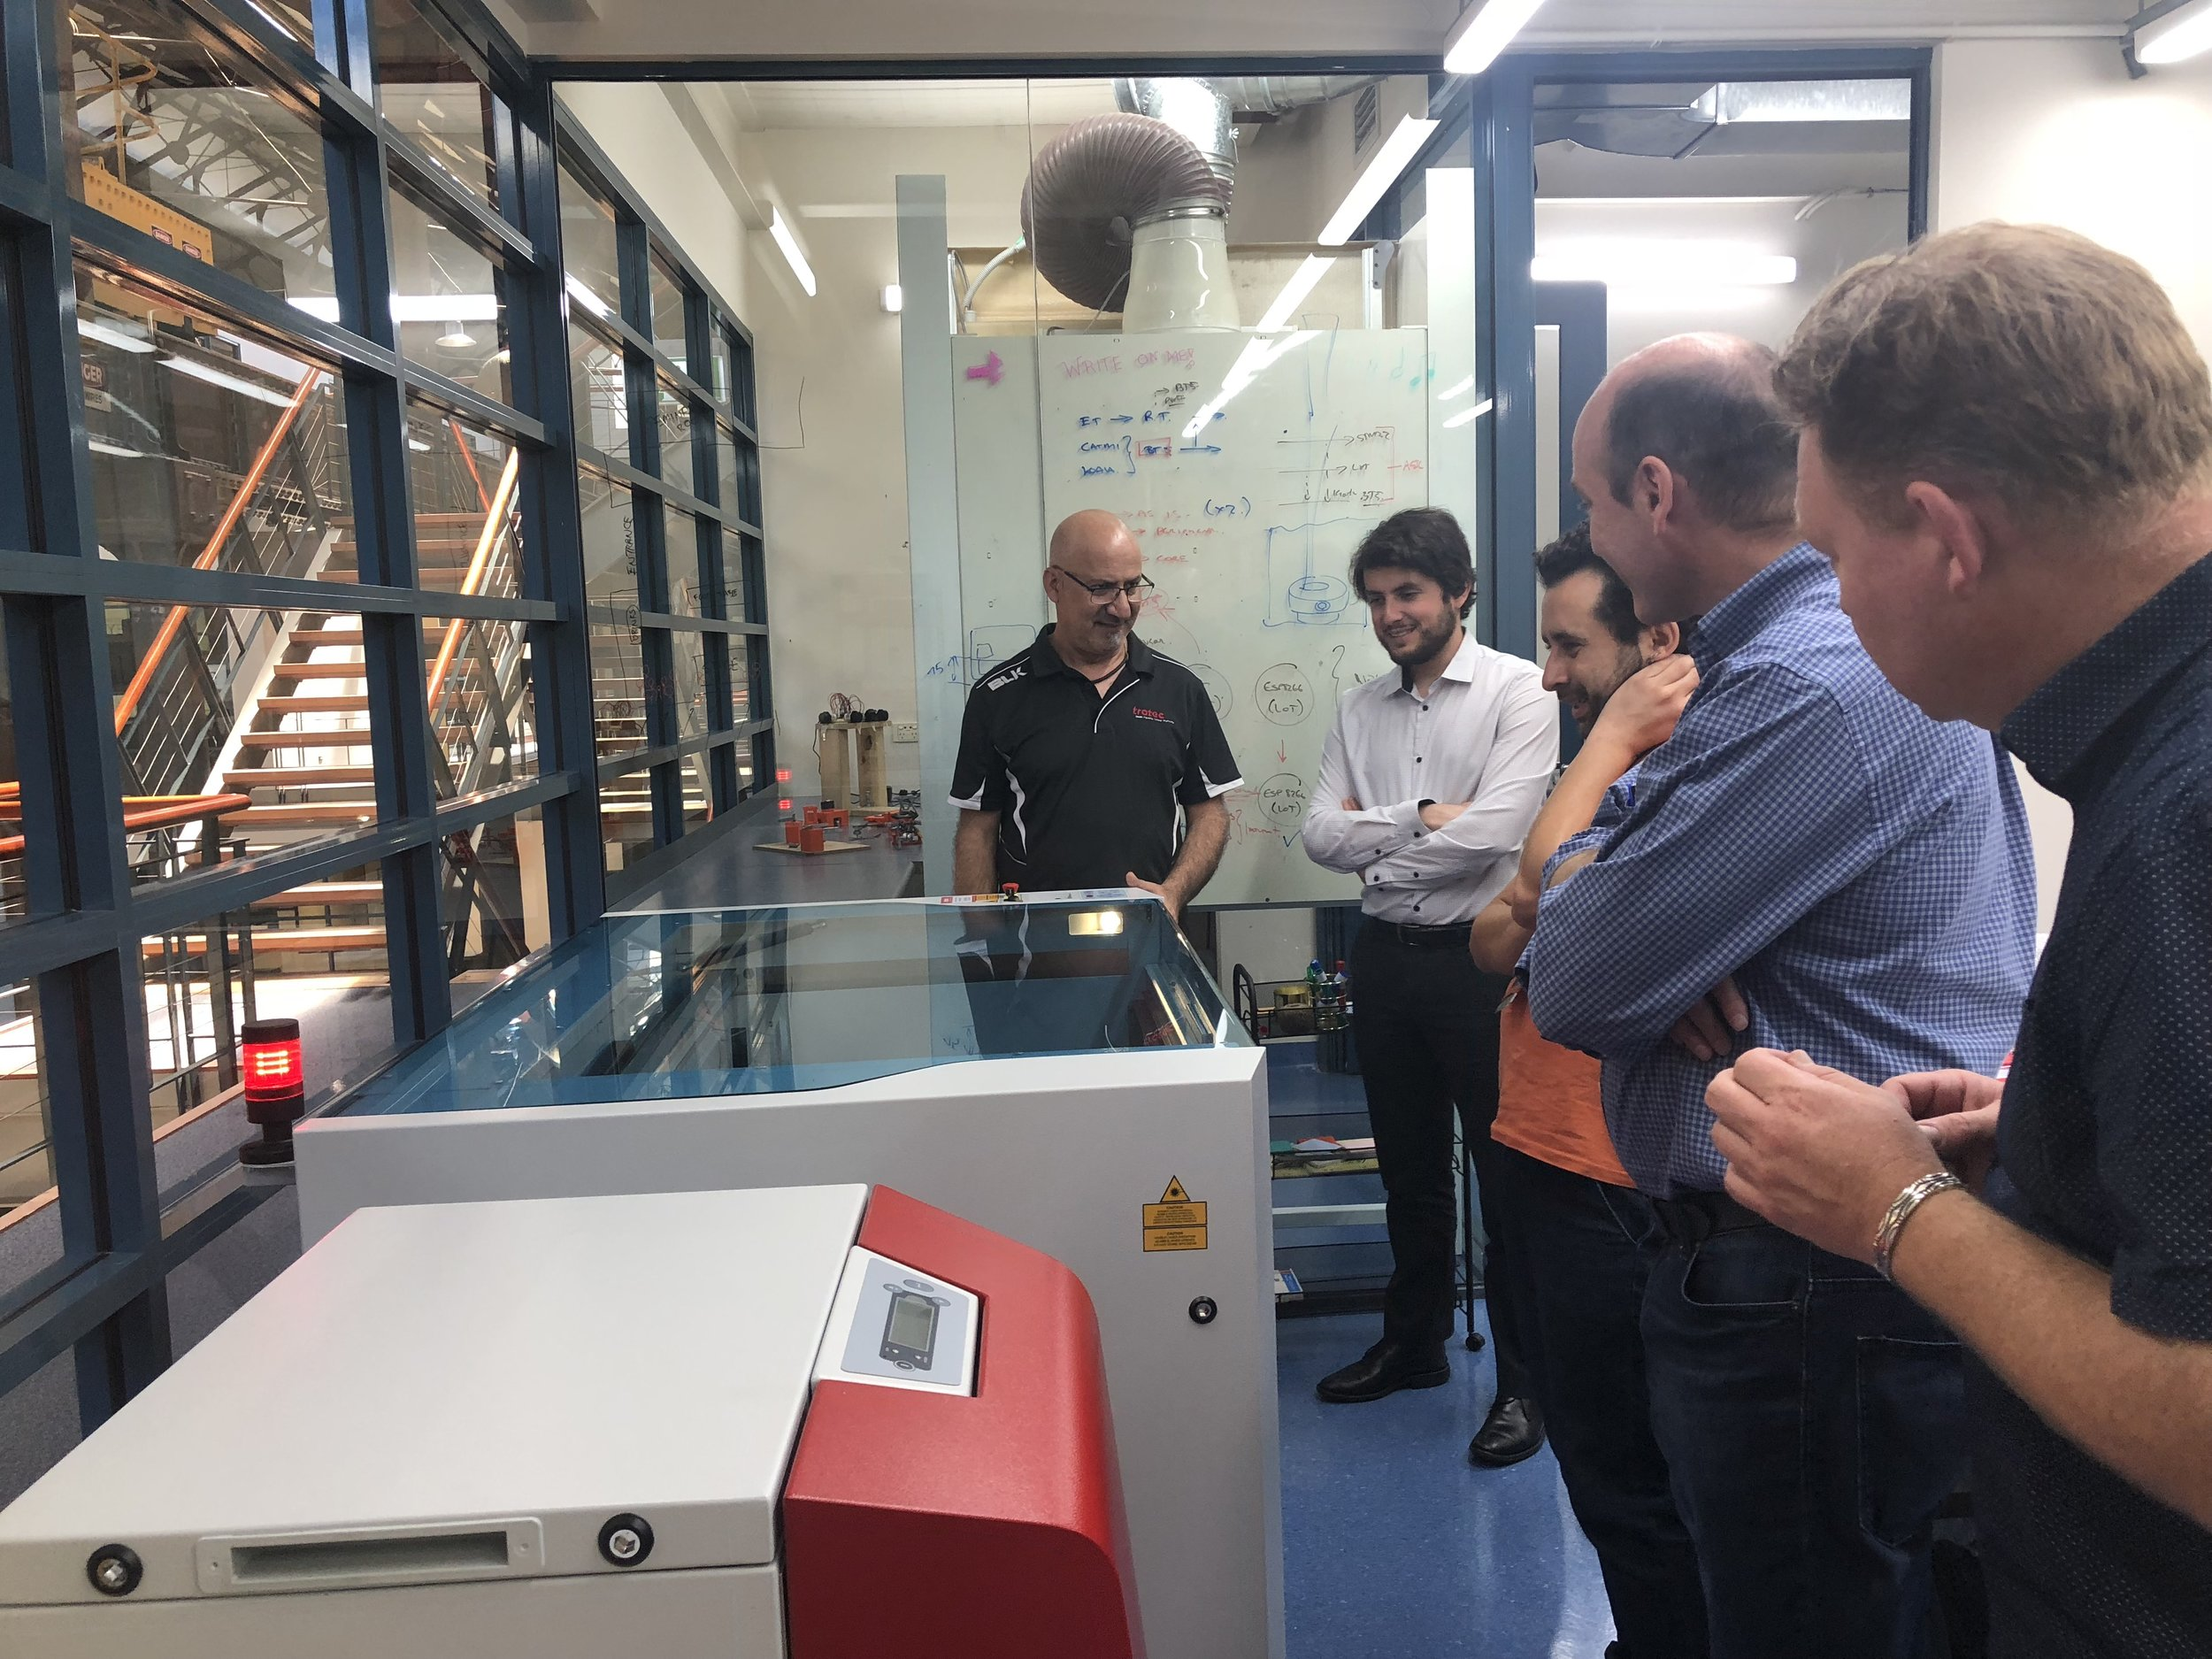 A group of people standing around the laser cutter